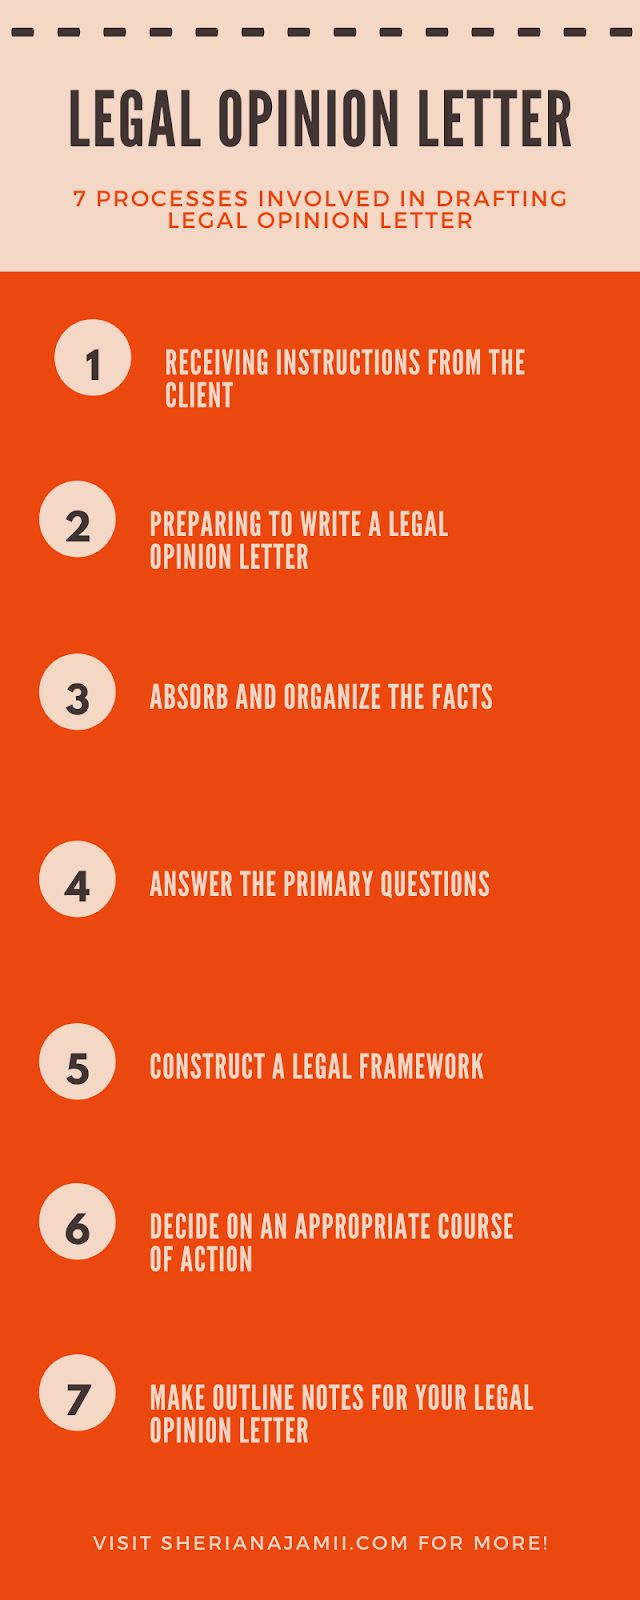 7 processes involved in drafting legal opinion letter